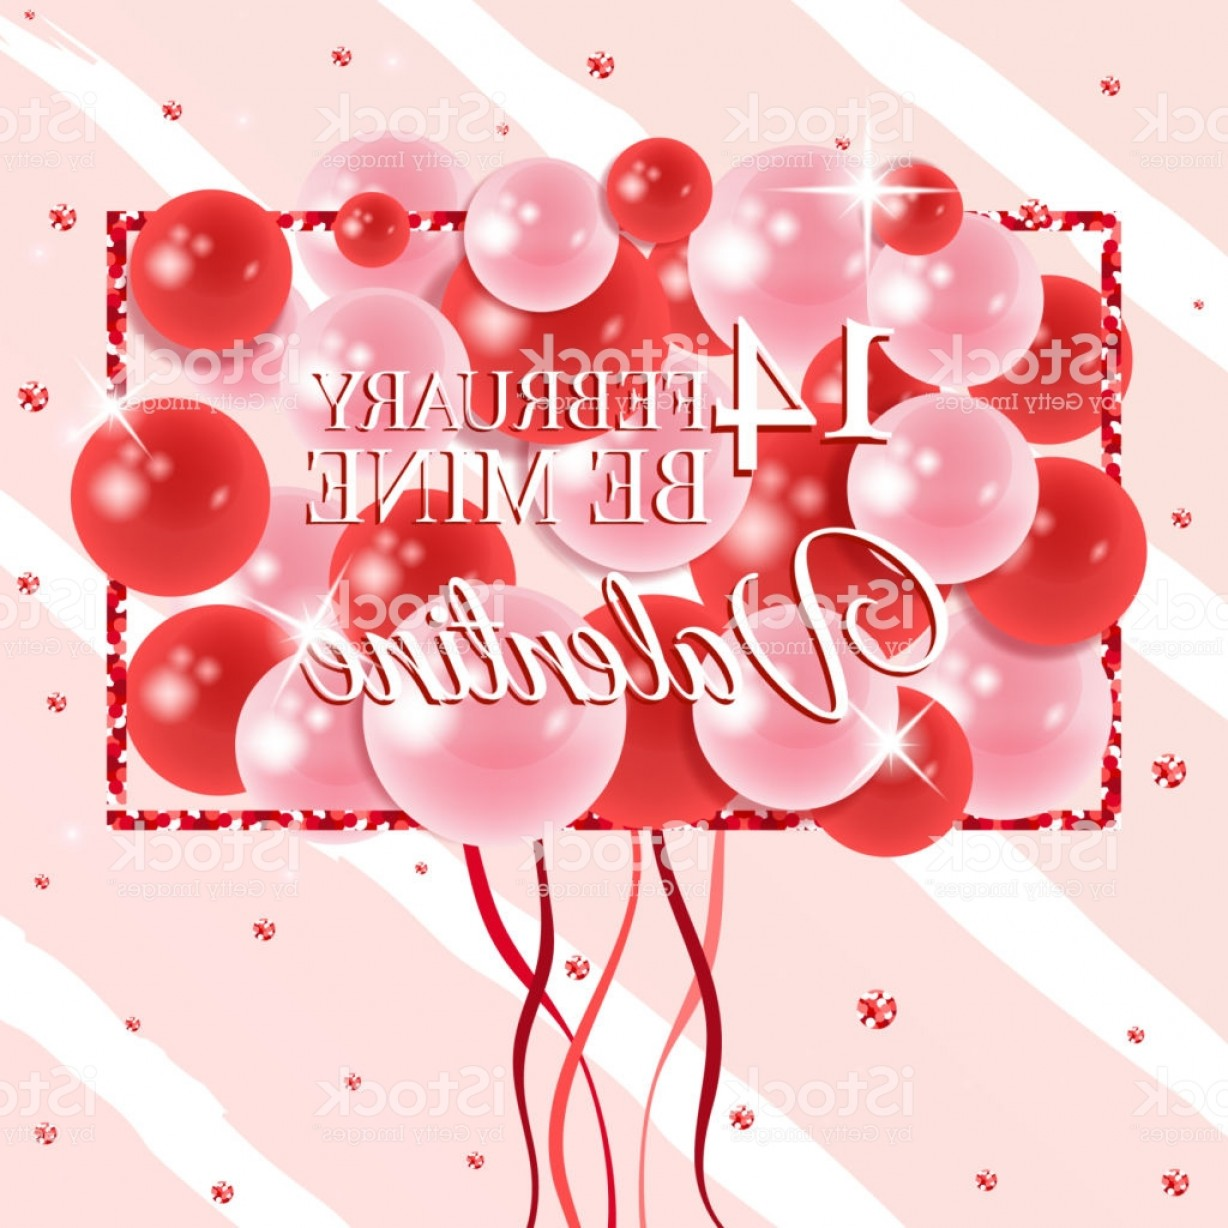 Balloons Vector Wallpaper: Happy Valentines Day Card With Balloons Vector Illustration Wallpaper Flyers Gm